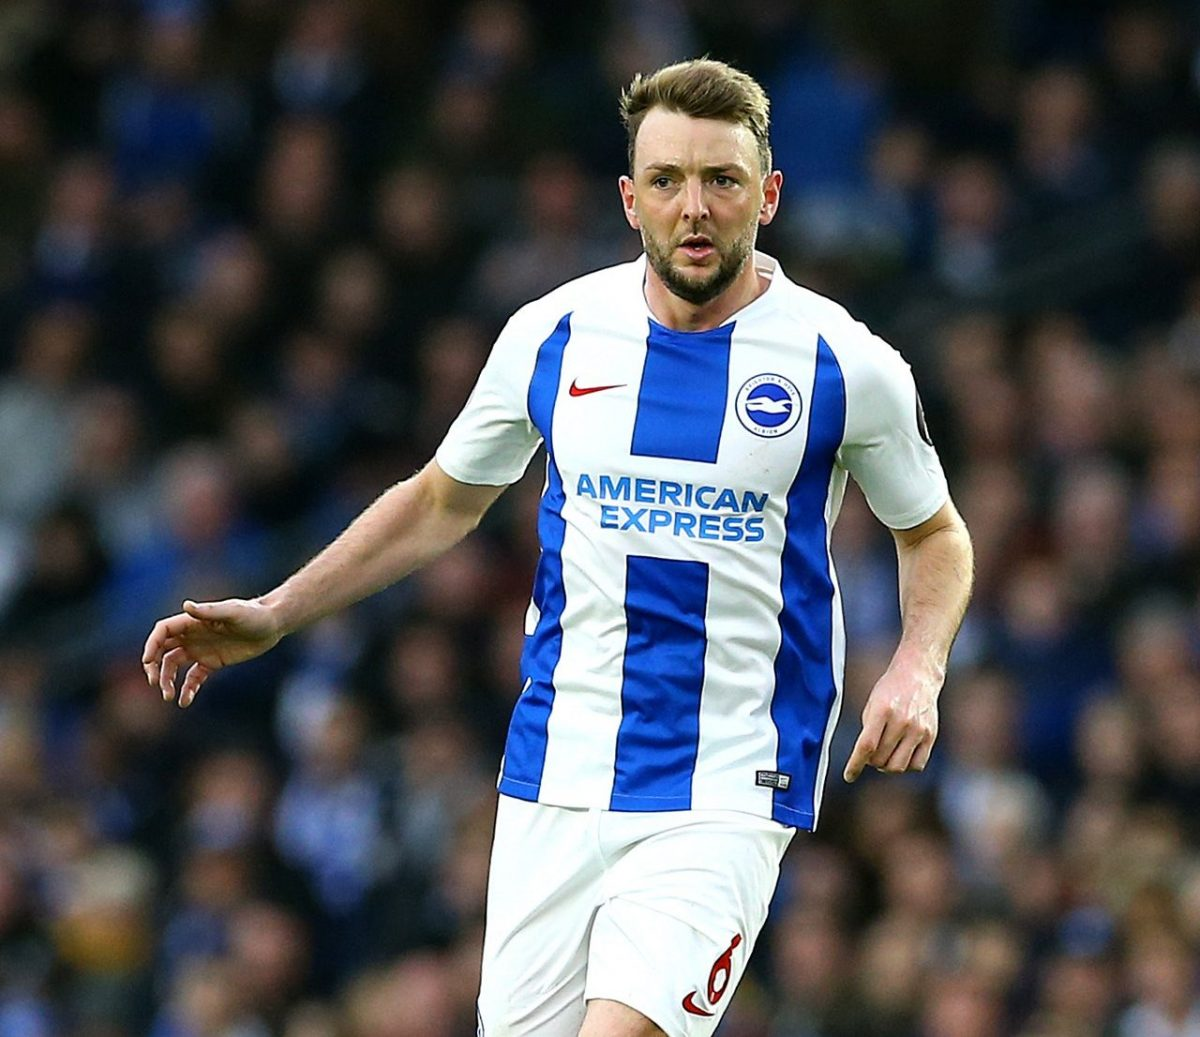 Stephens Takes The Positives From Wembley Woe